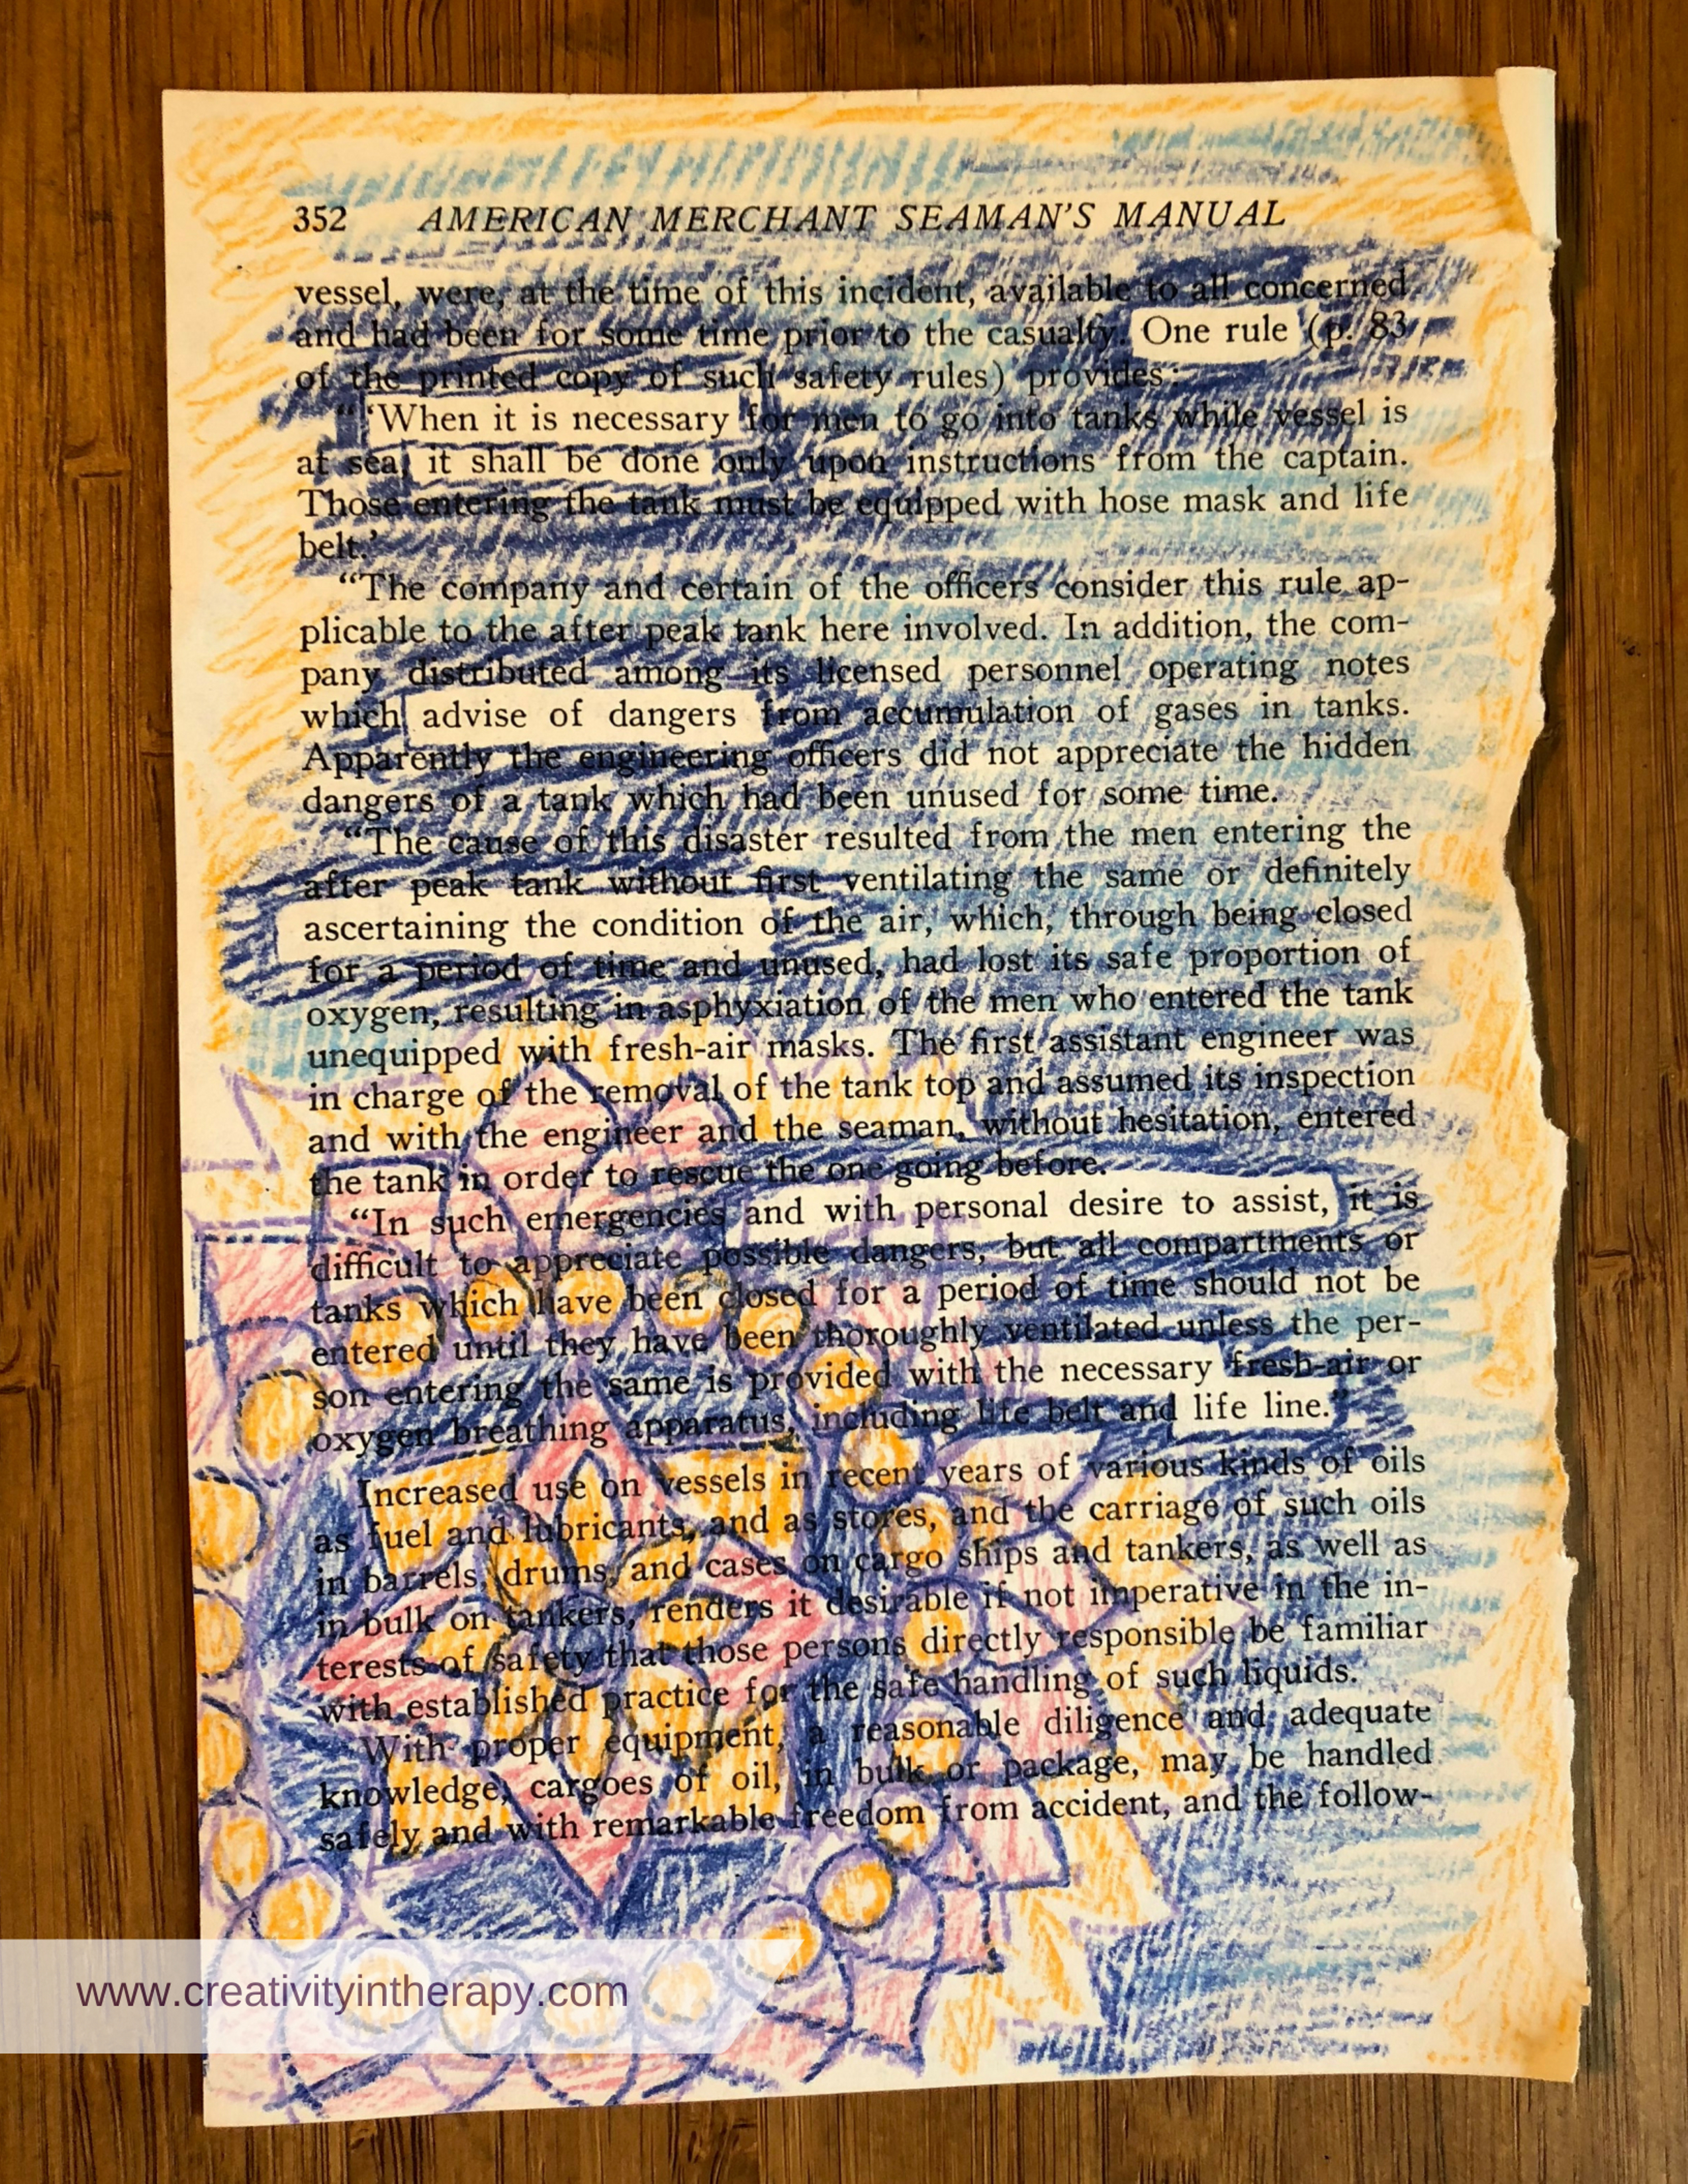 Blackout Poetry and Altered Books - Creativity in Therapy ...